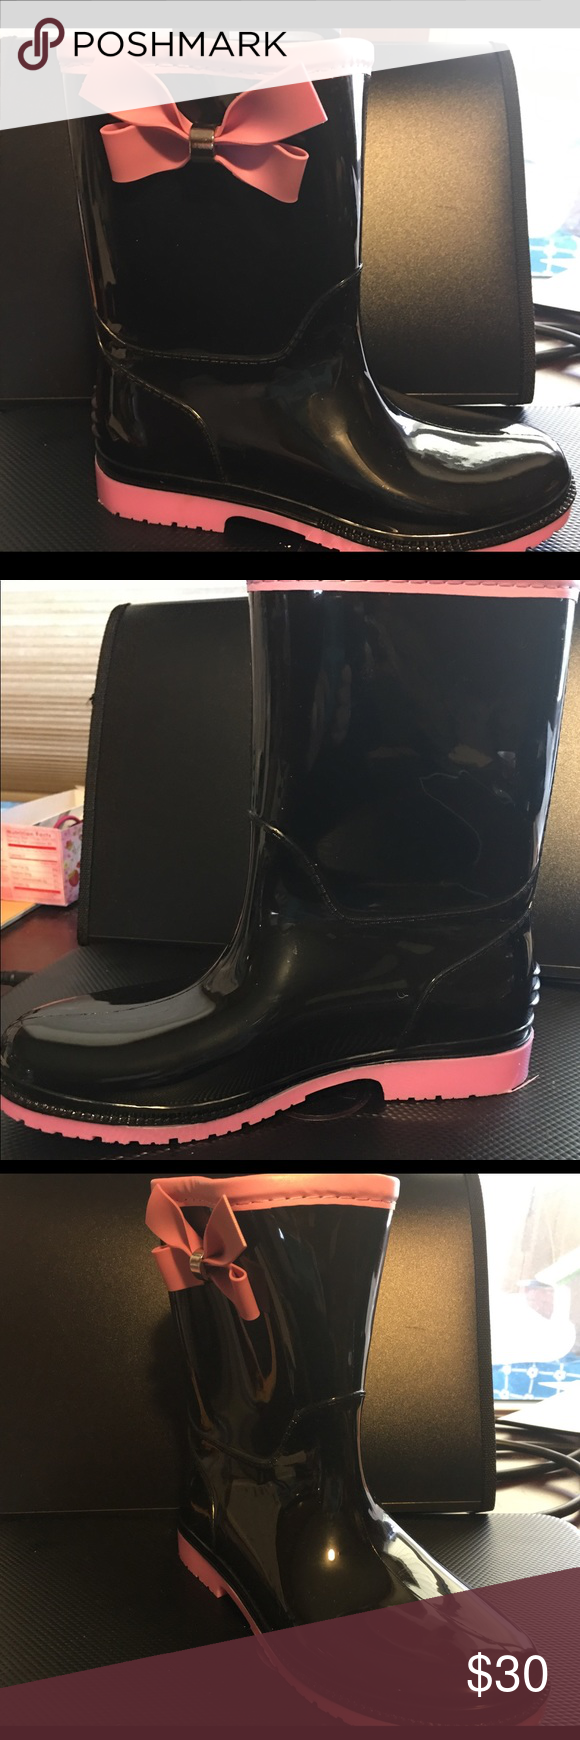 Henry Ferrera Girls' Bow Detail Rubber Rain Boots These cute Henry Ferrera rain boots will help your little girl dry while she is out and about. These boots are styled with a playful side bow and faux seam detailing for a traditional look. NWB. Shoes Rain & Snow Boots